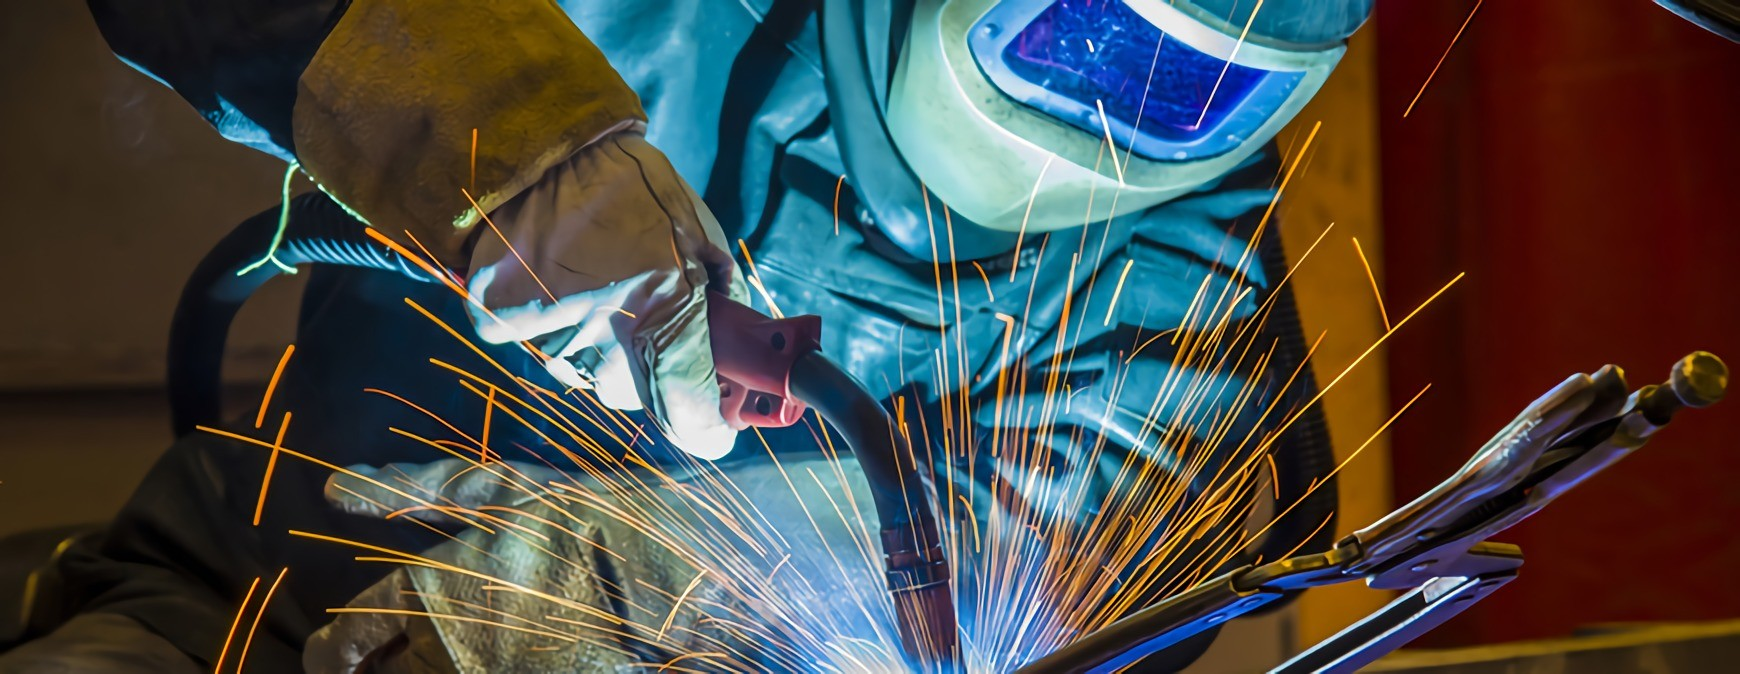 welding for shipfitting